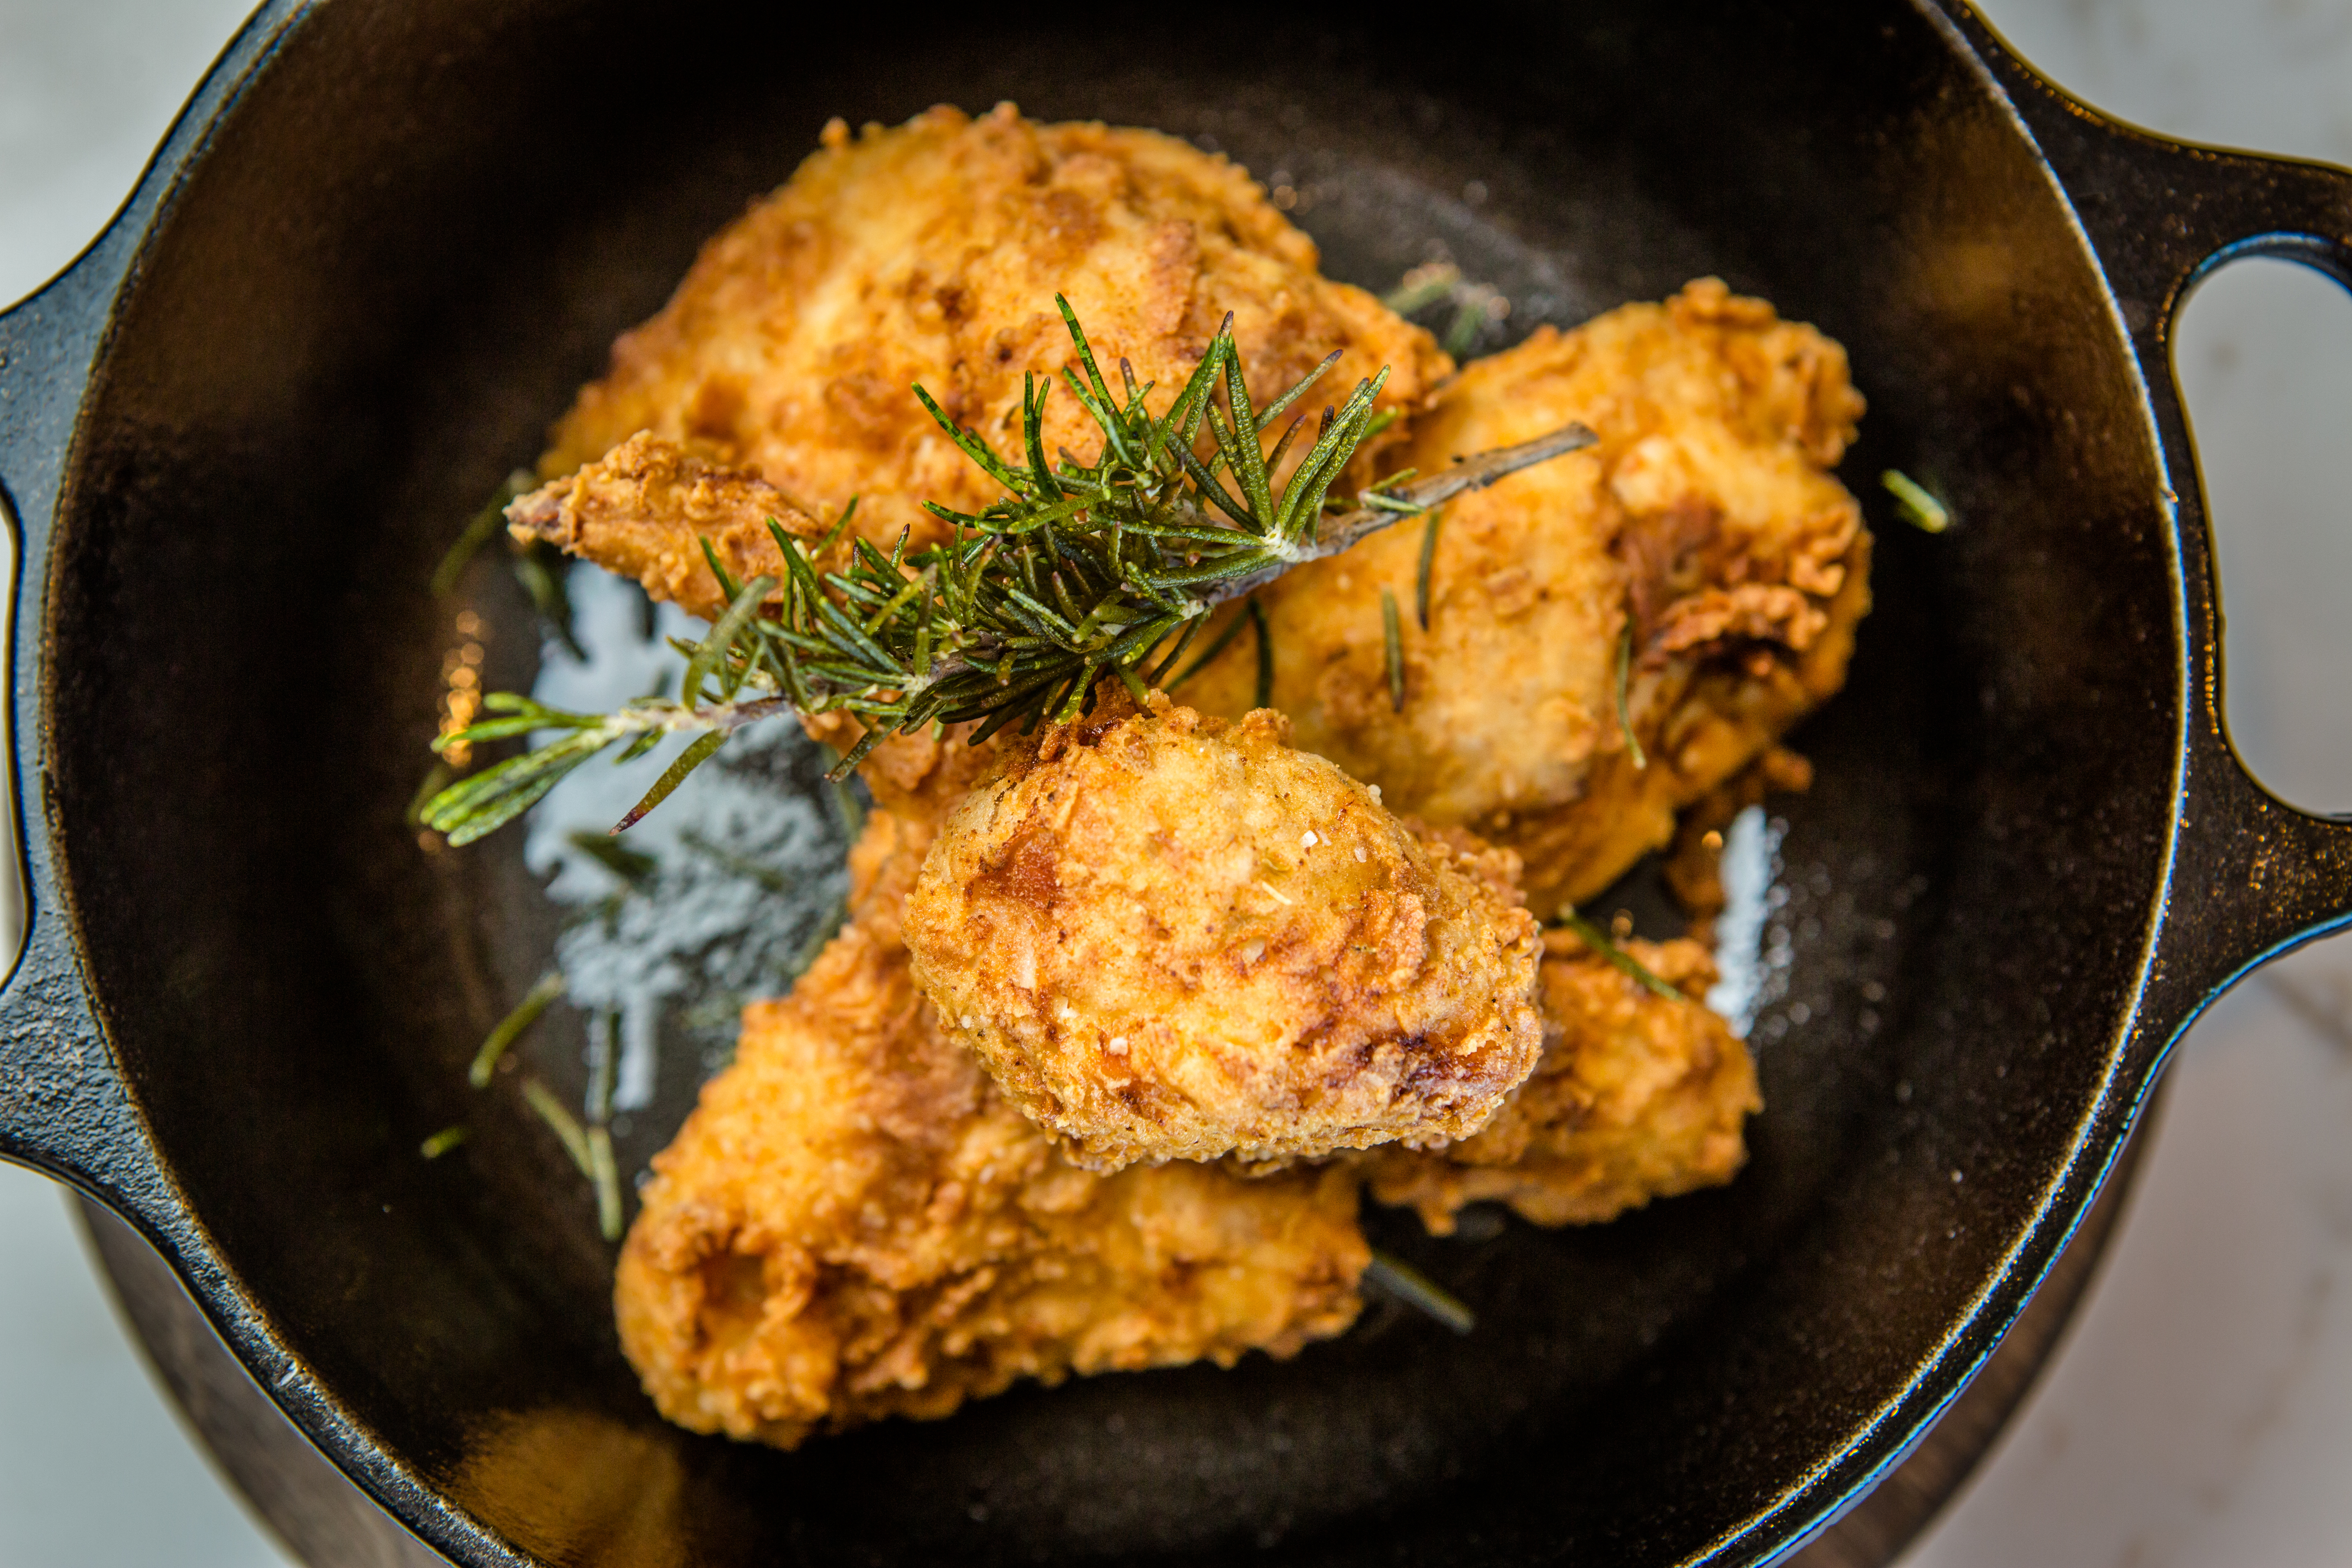 Moss and Oak Fried Chicken, served in a cast iron dutch oven